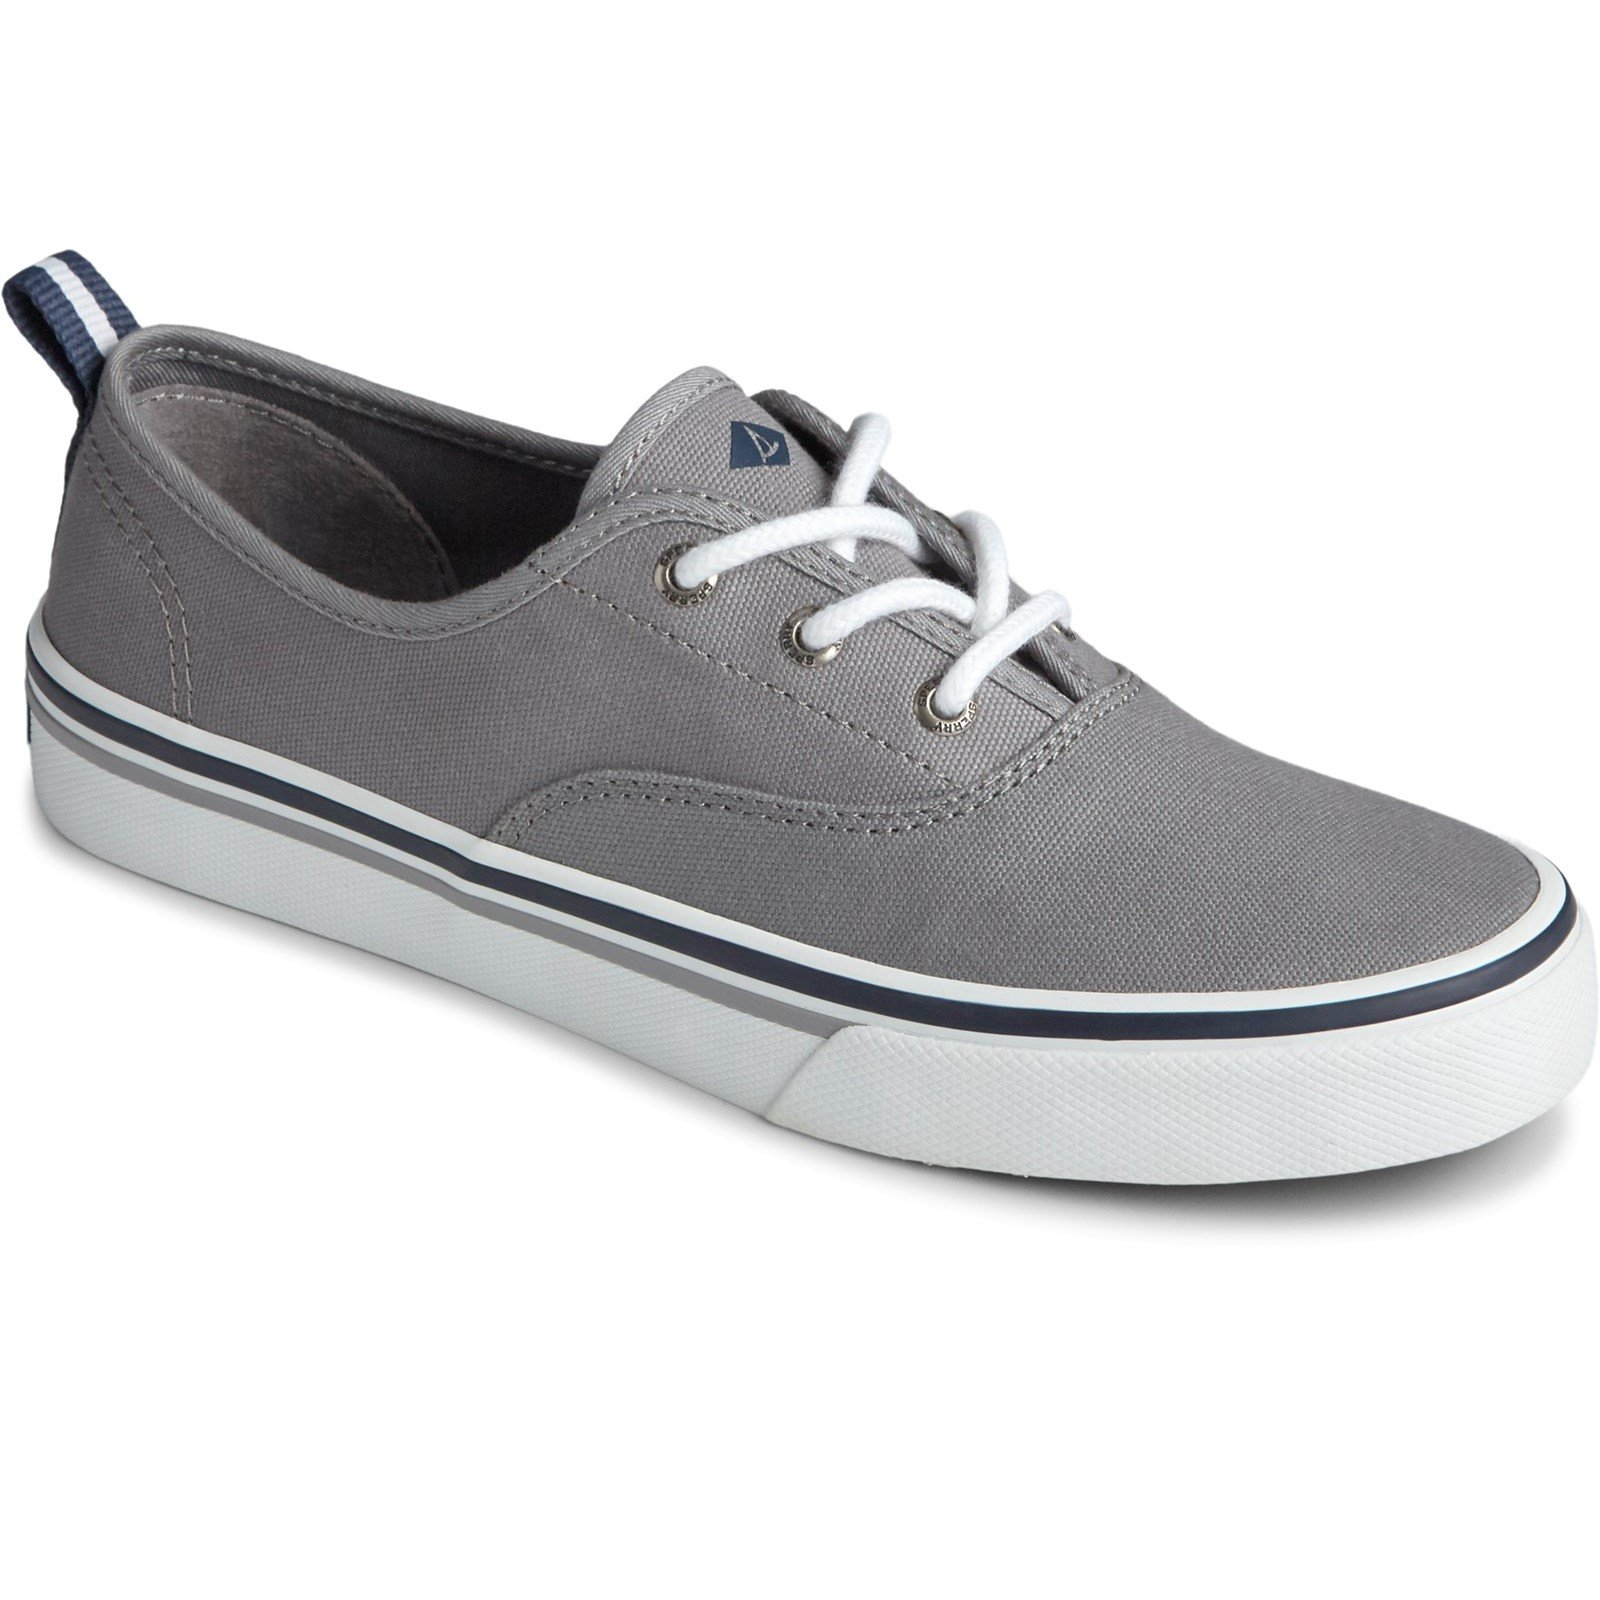 Sperry Women's Crest CVO Trainers Various Colours 32936 - Grey 7